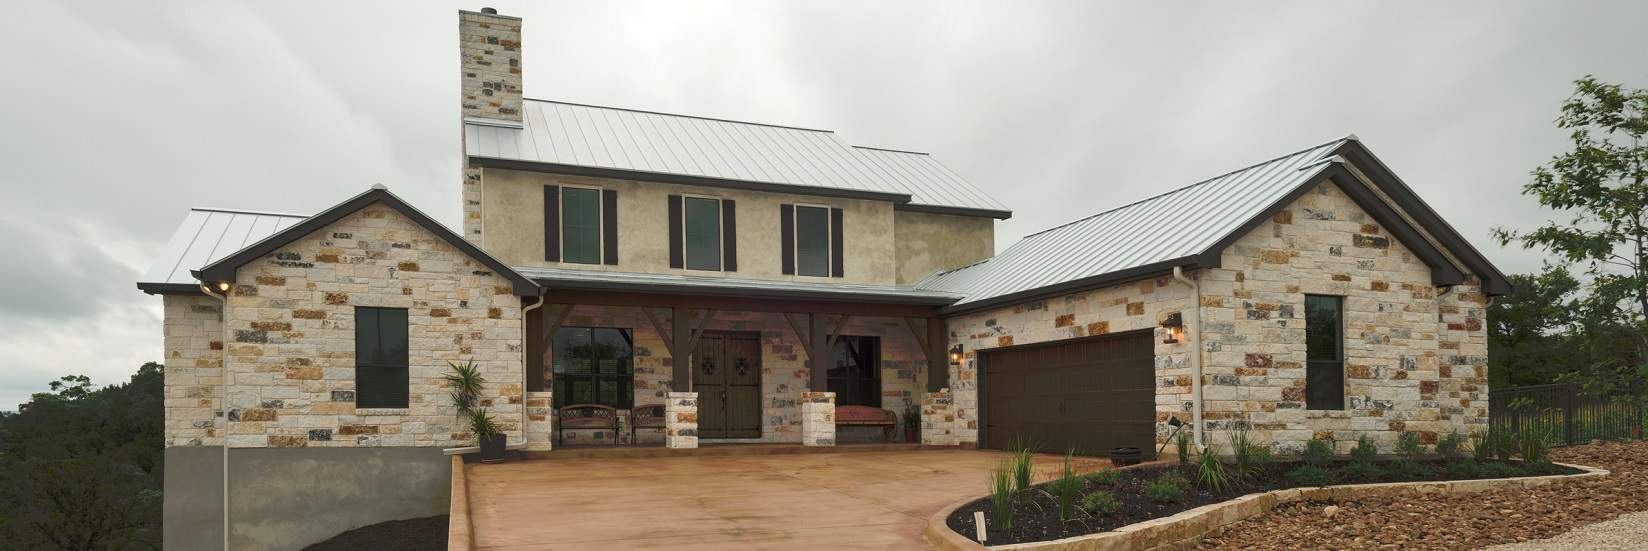 Custom Home Builder New Braunfels San Antonio Hill